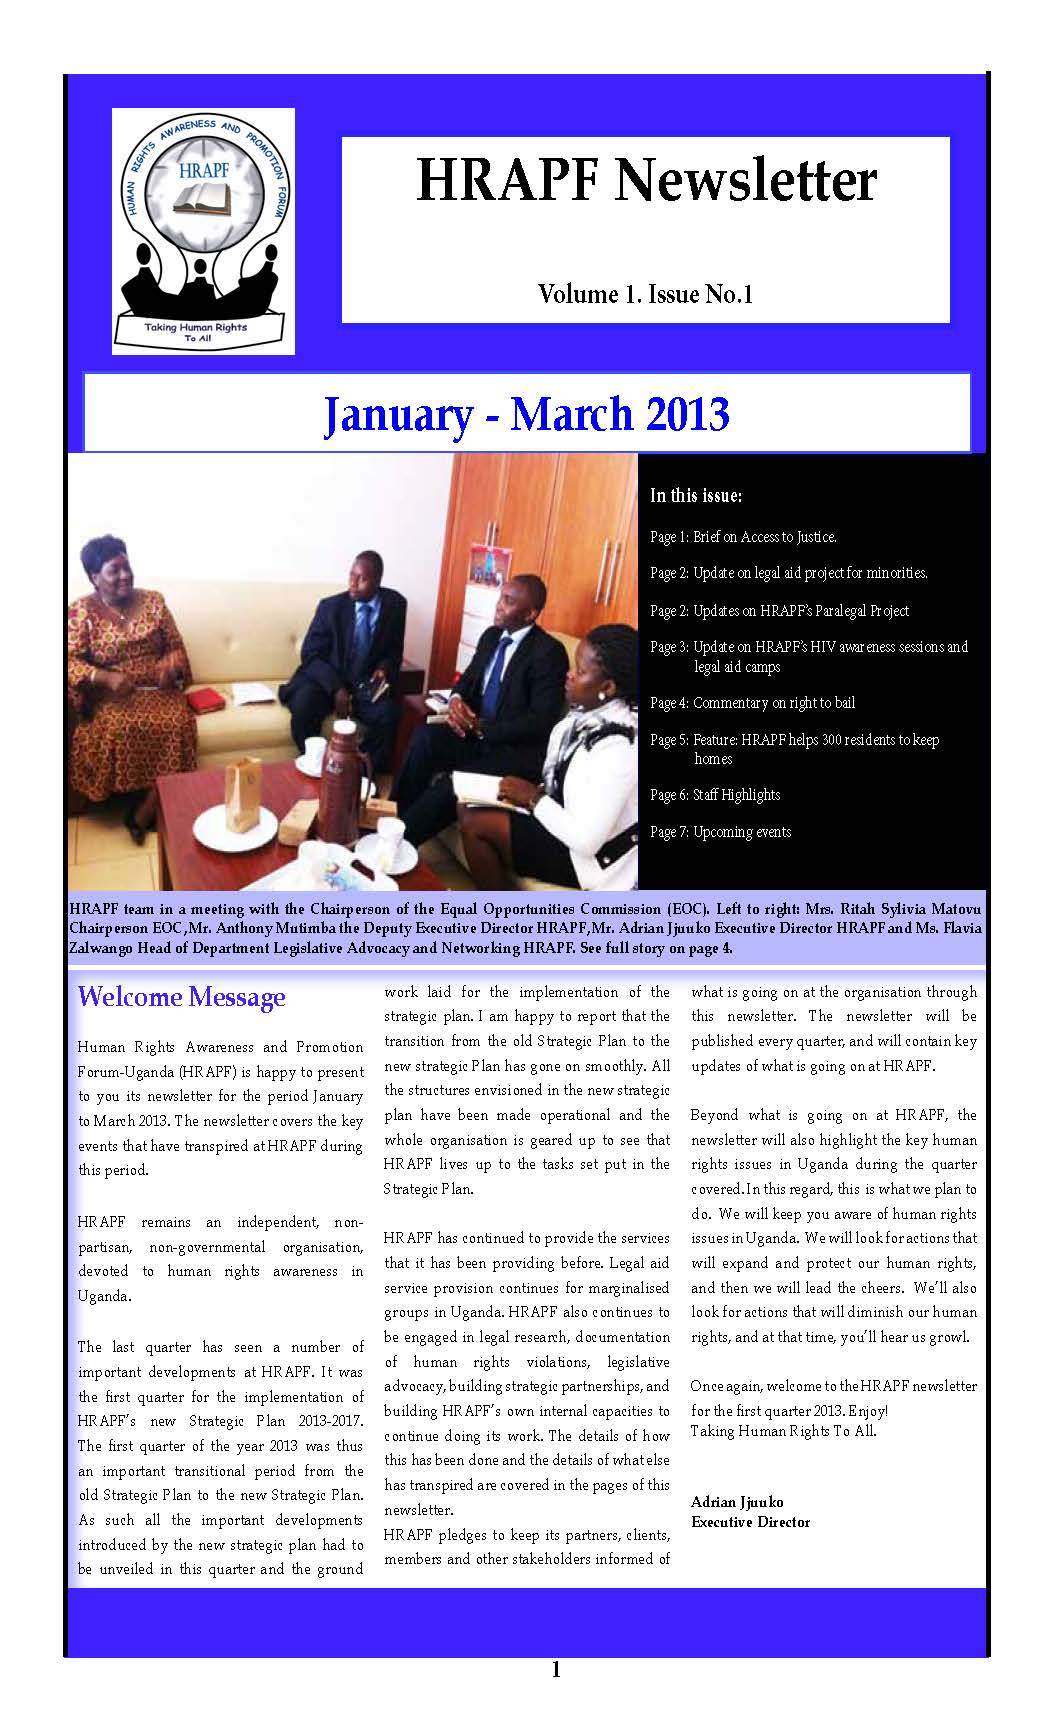 First issue of the HRAPF Newsletter